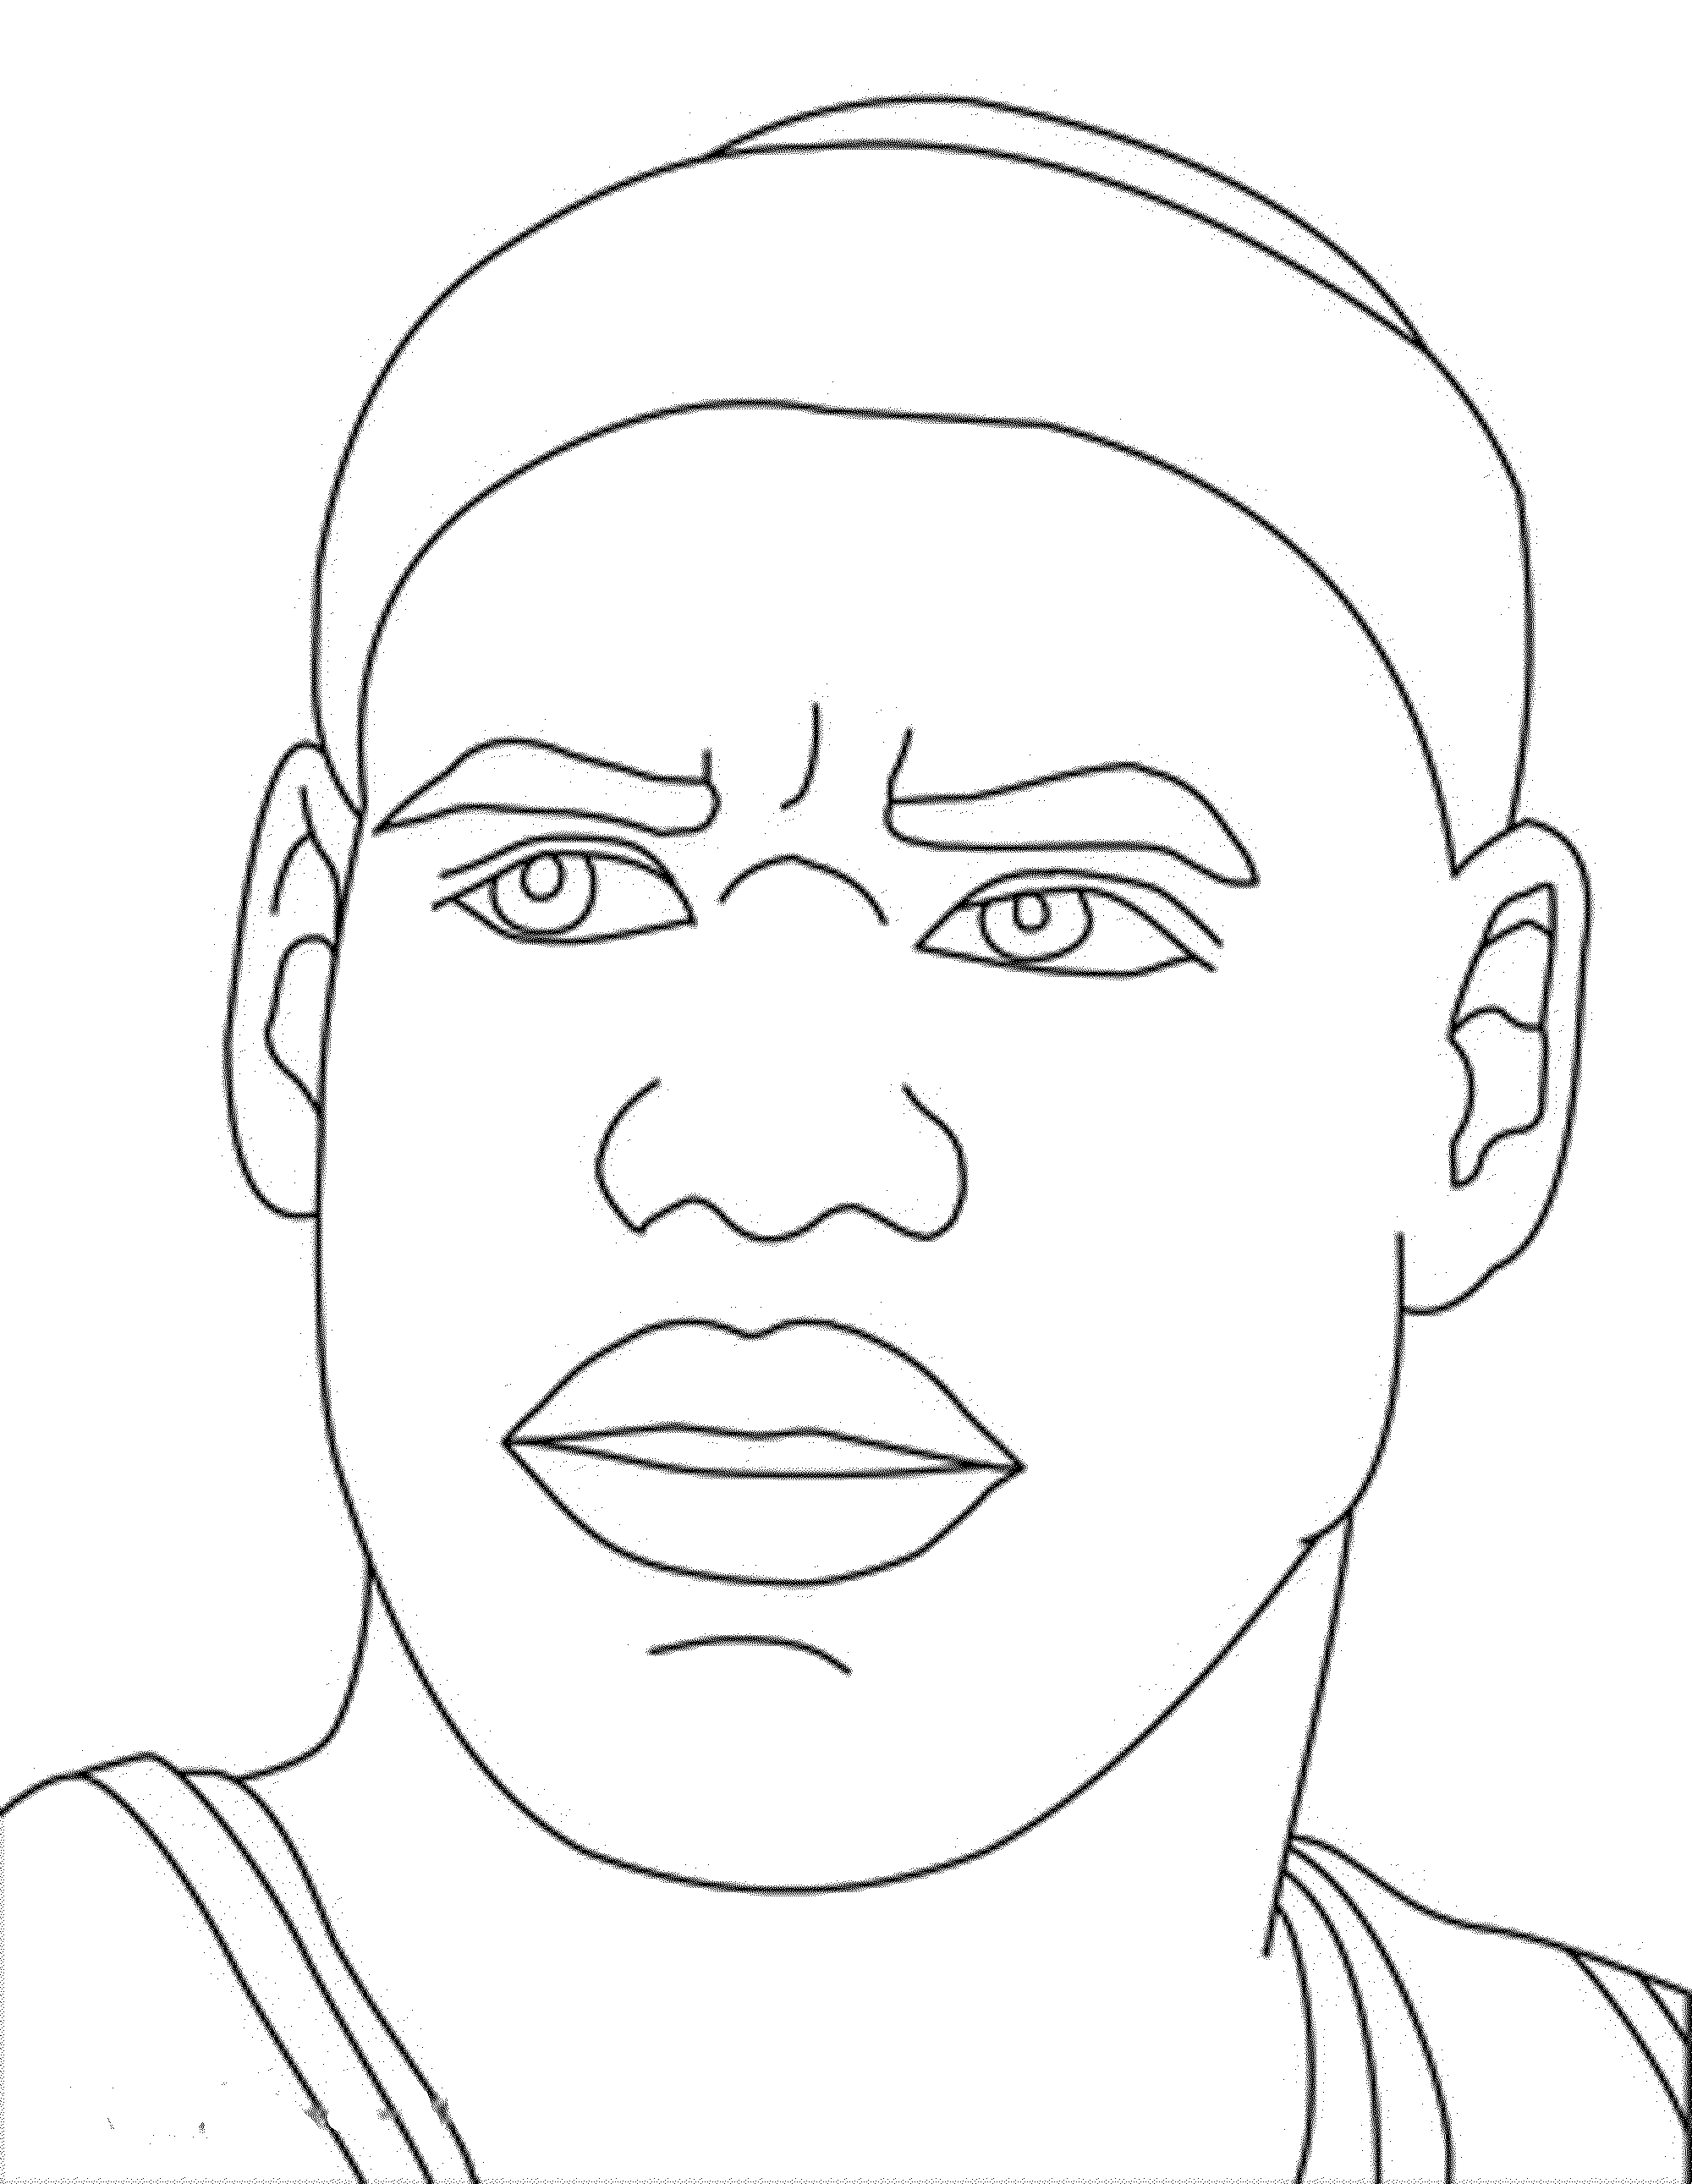 2000x2582 Stunning Nba Logo Coloring Pages With Lebron James Coloring Pages